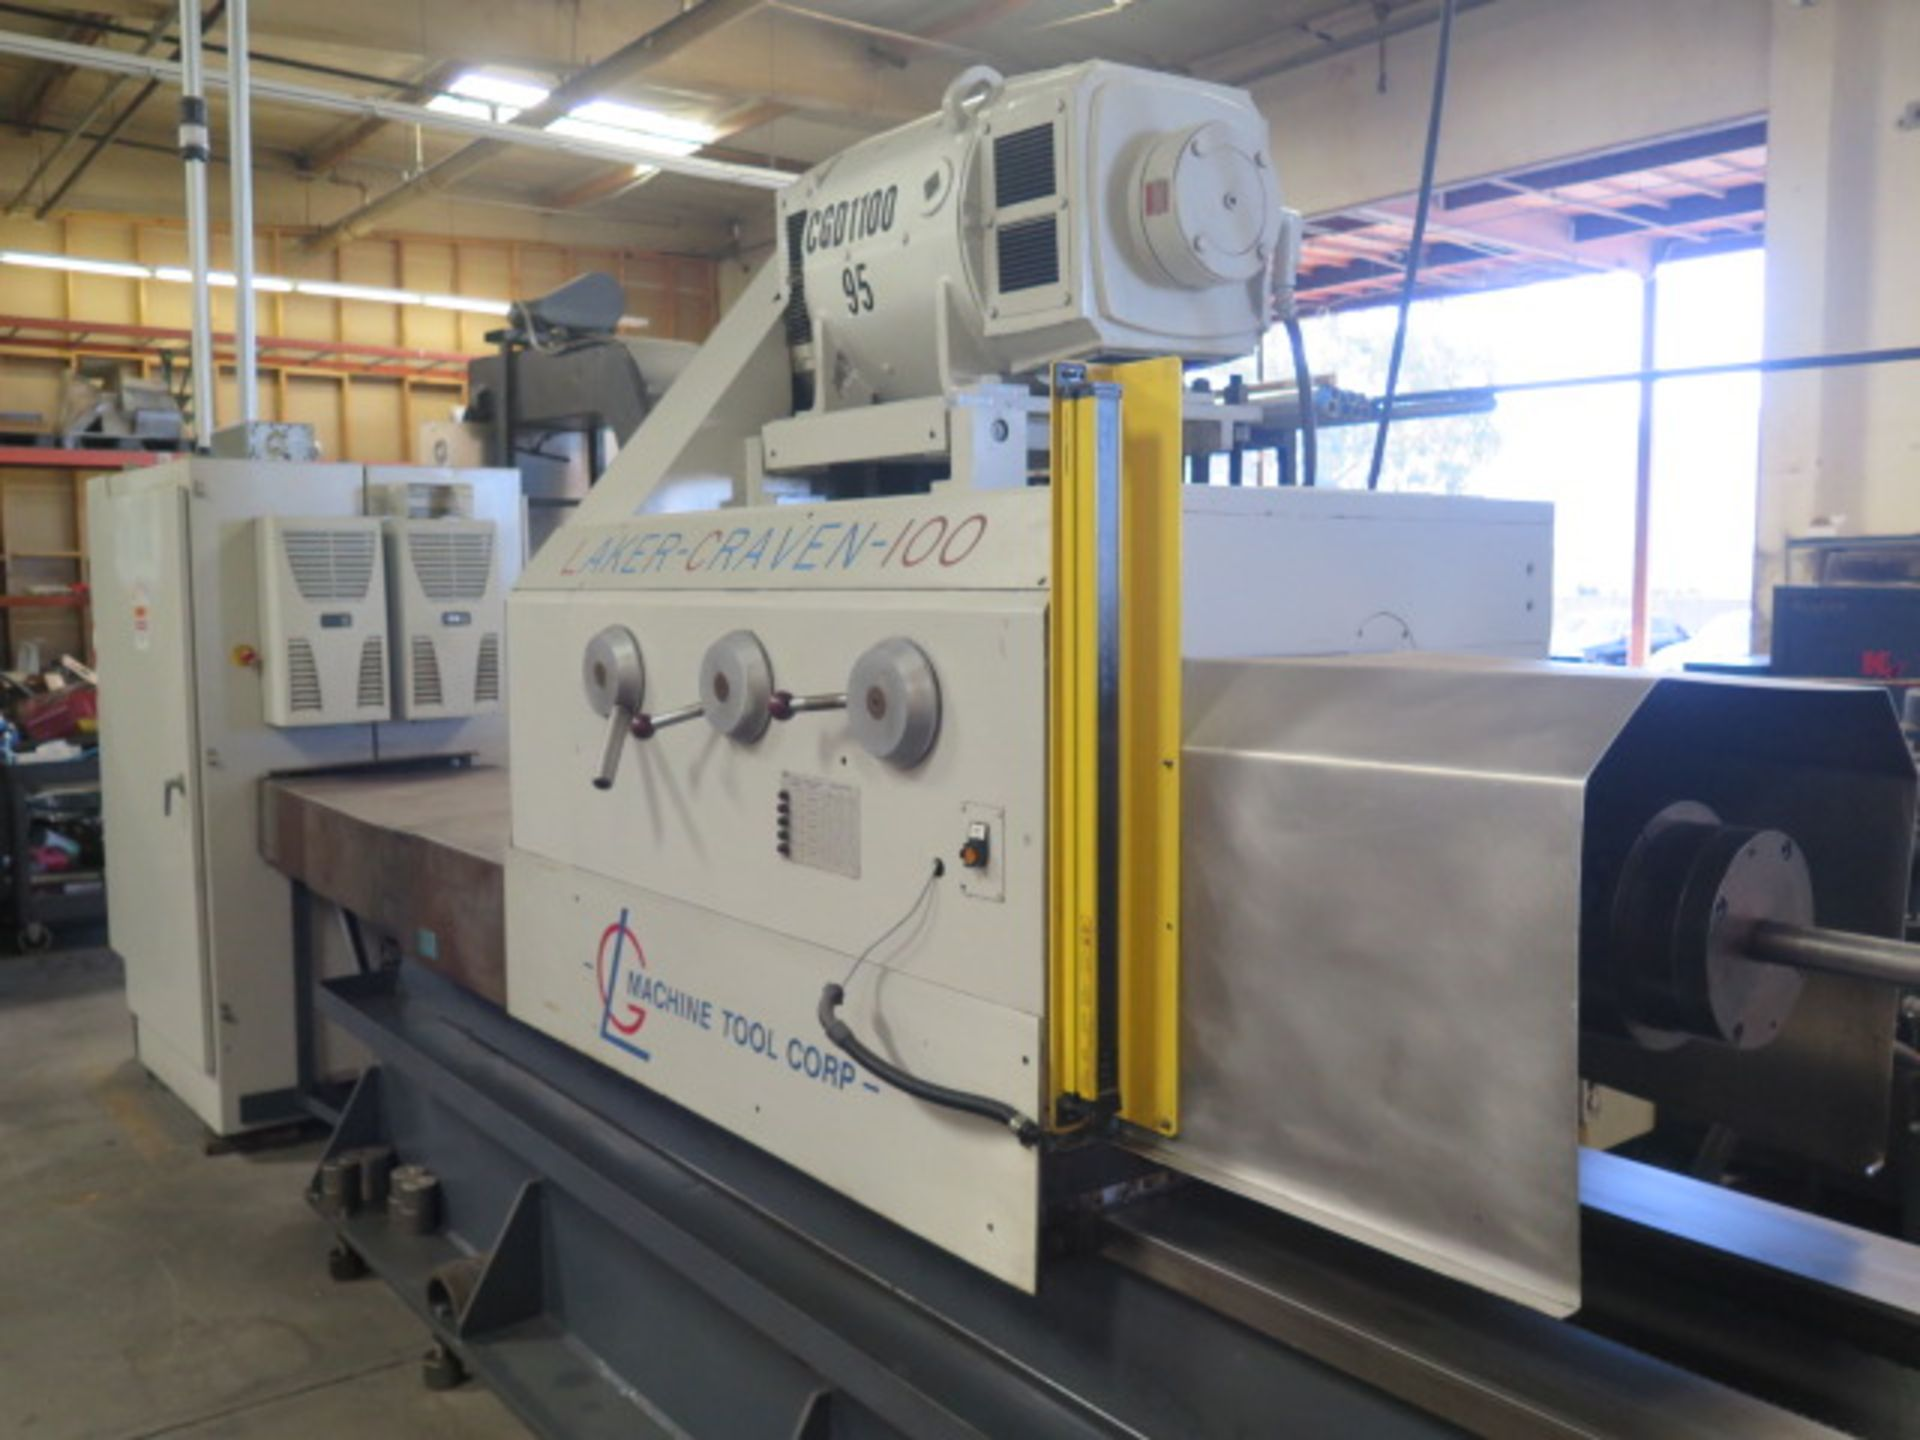 Laker-Craven-100 CNC Deep Hole Drilling Machine s/n 1241 w/ Fanuc Power MATE Controls, SOLD AS IS - Image 9 of 41